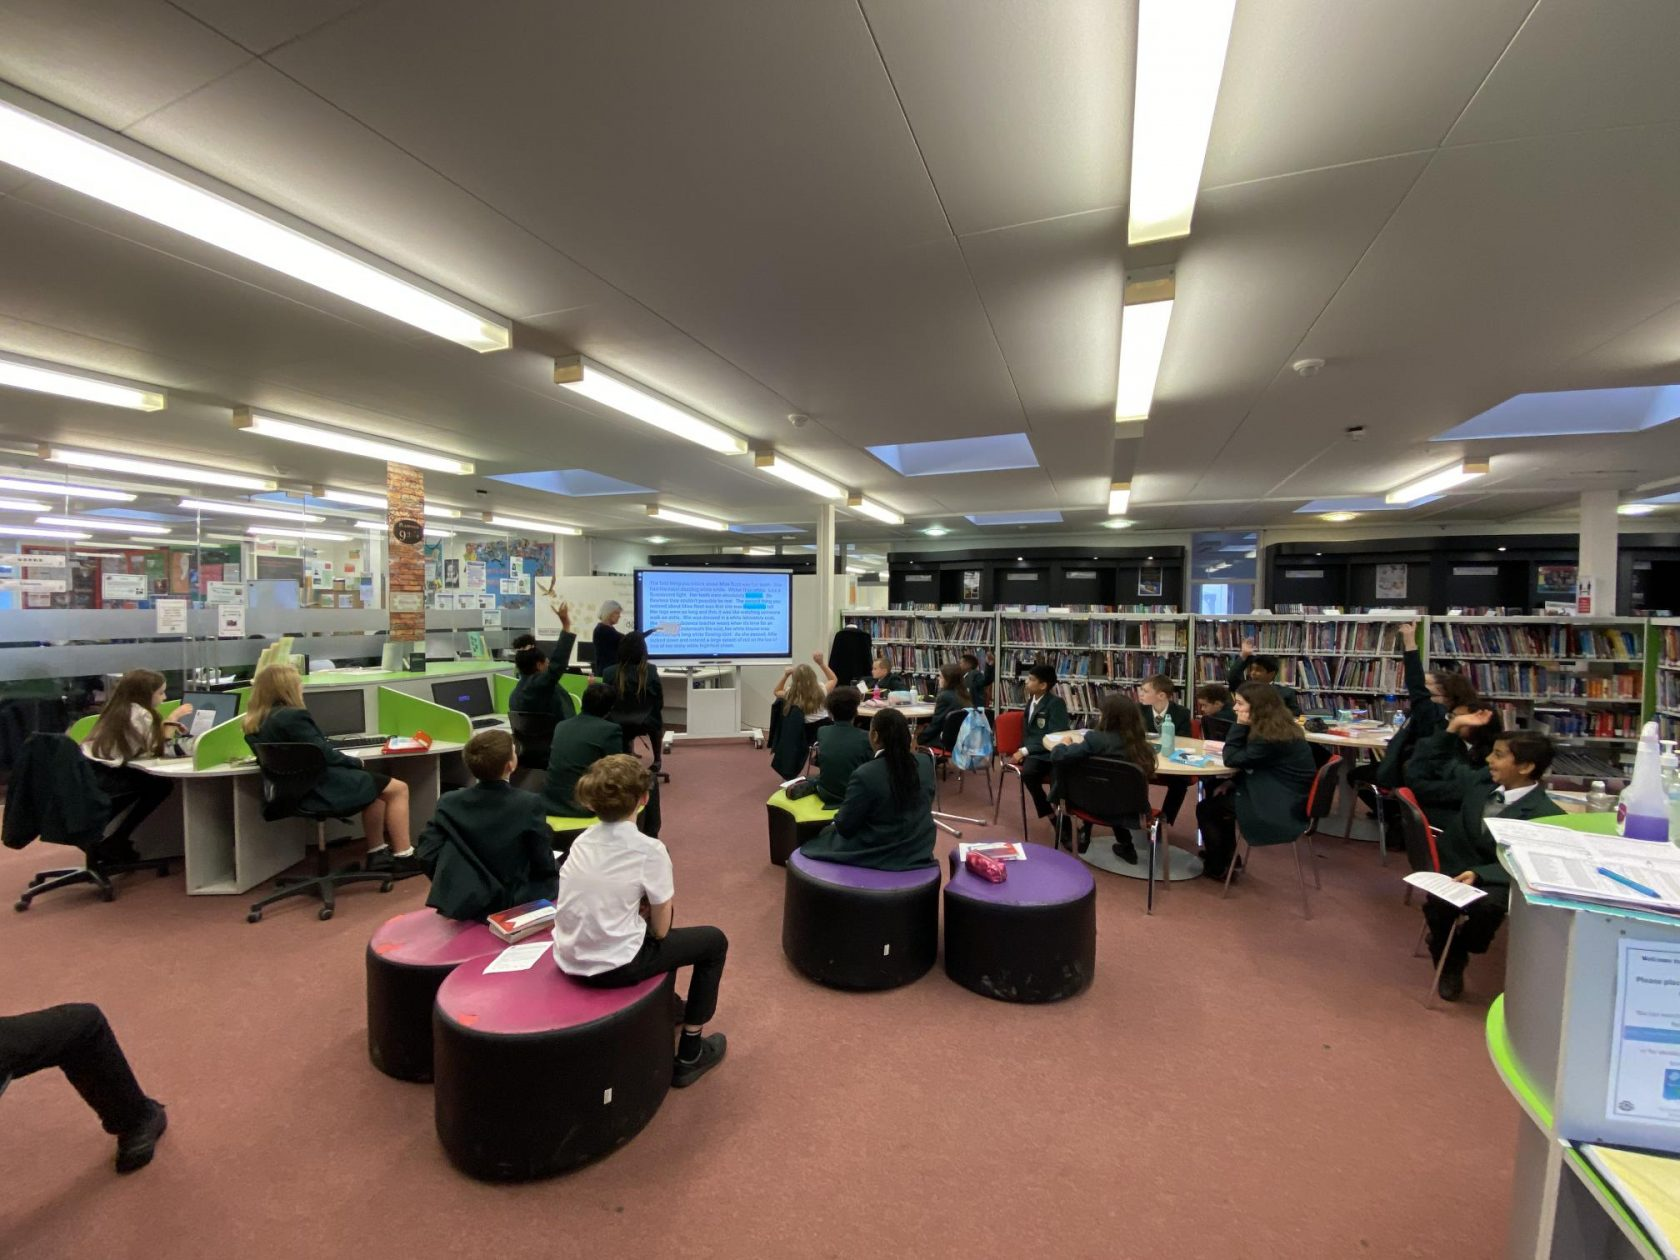 Great Engagement in the LRC